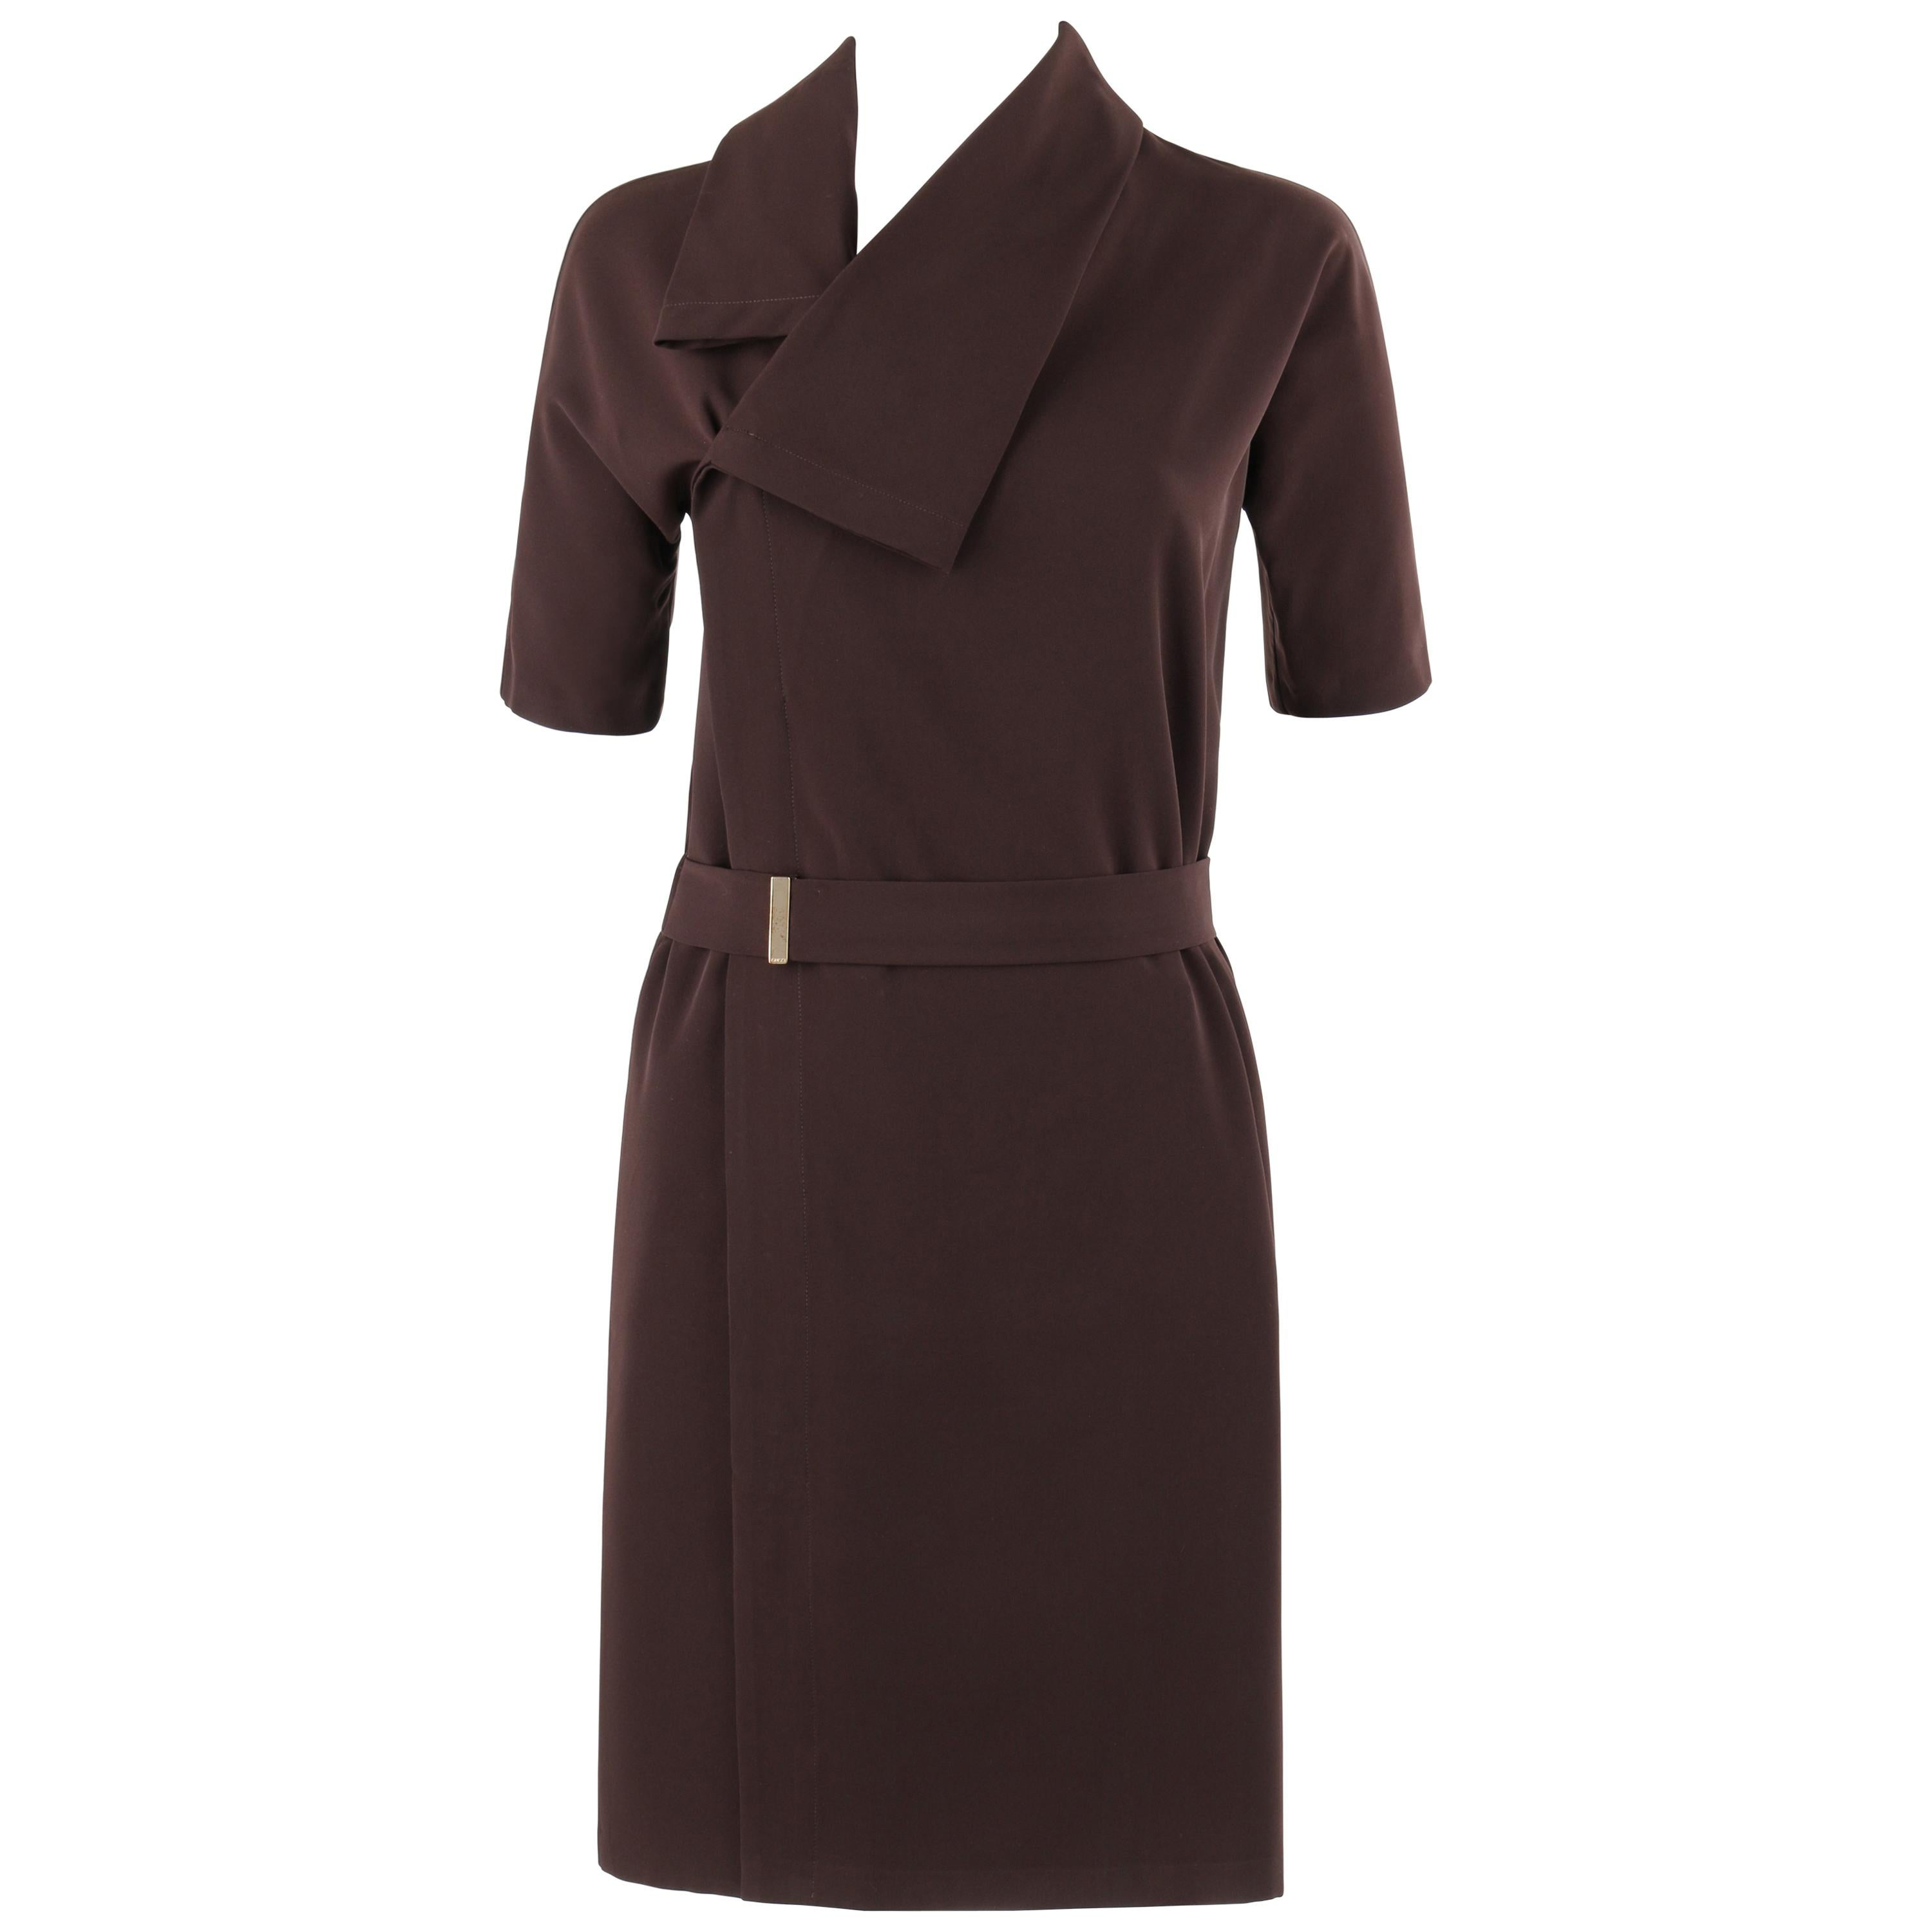 GUCCI A/W 2010 Brown Dolman Sleeve Belted Asymmetrical Shift Cocktail Dress